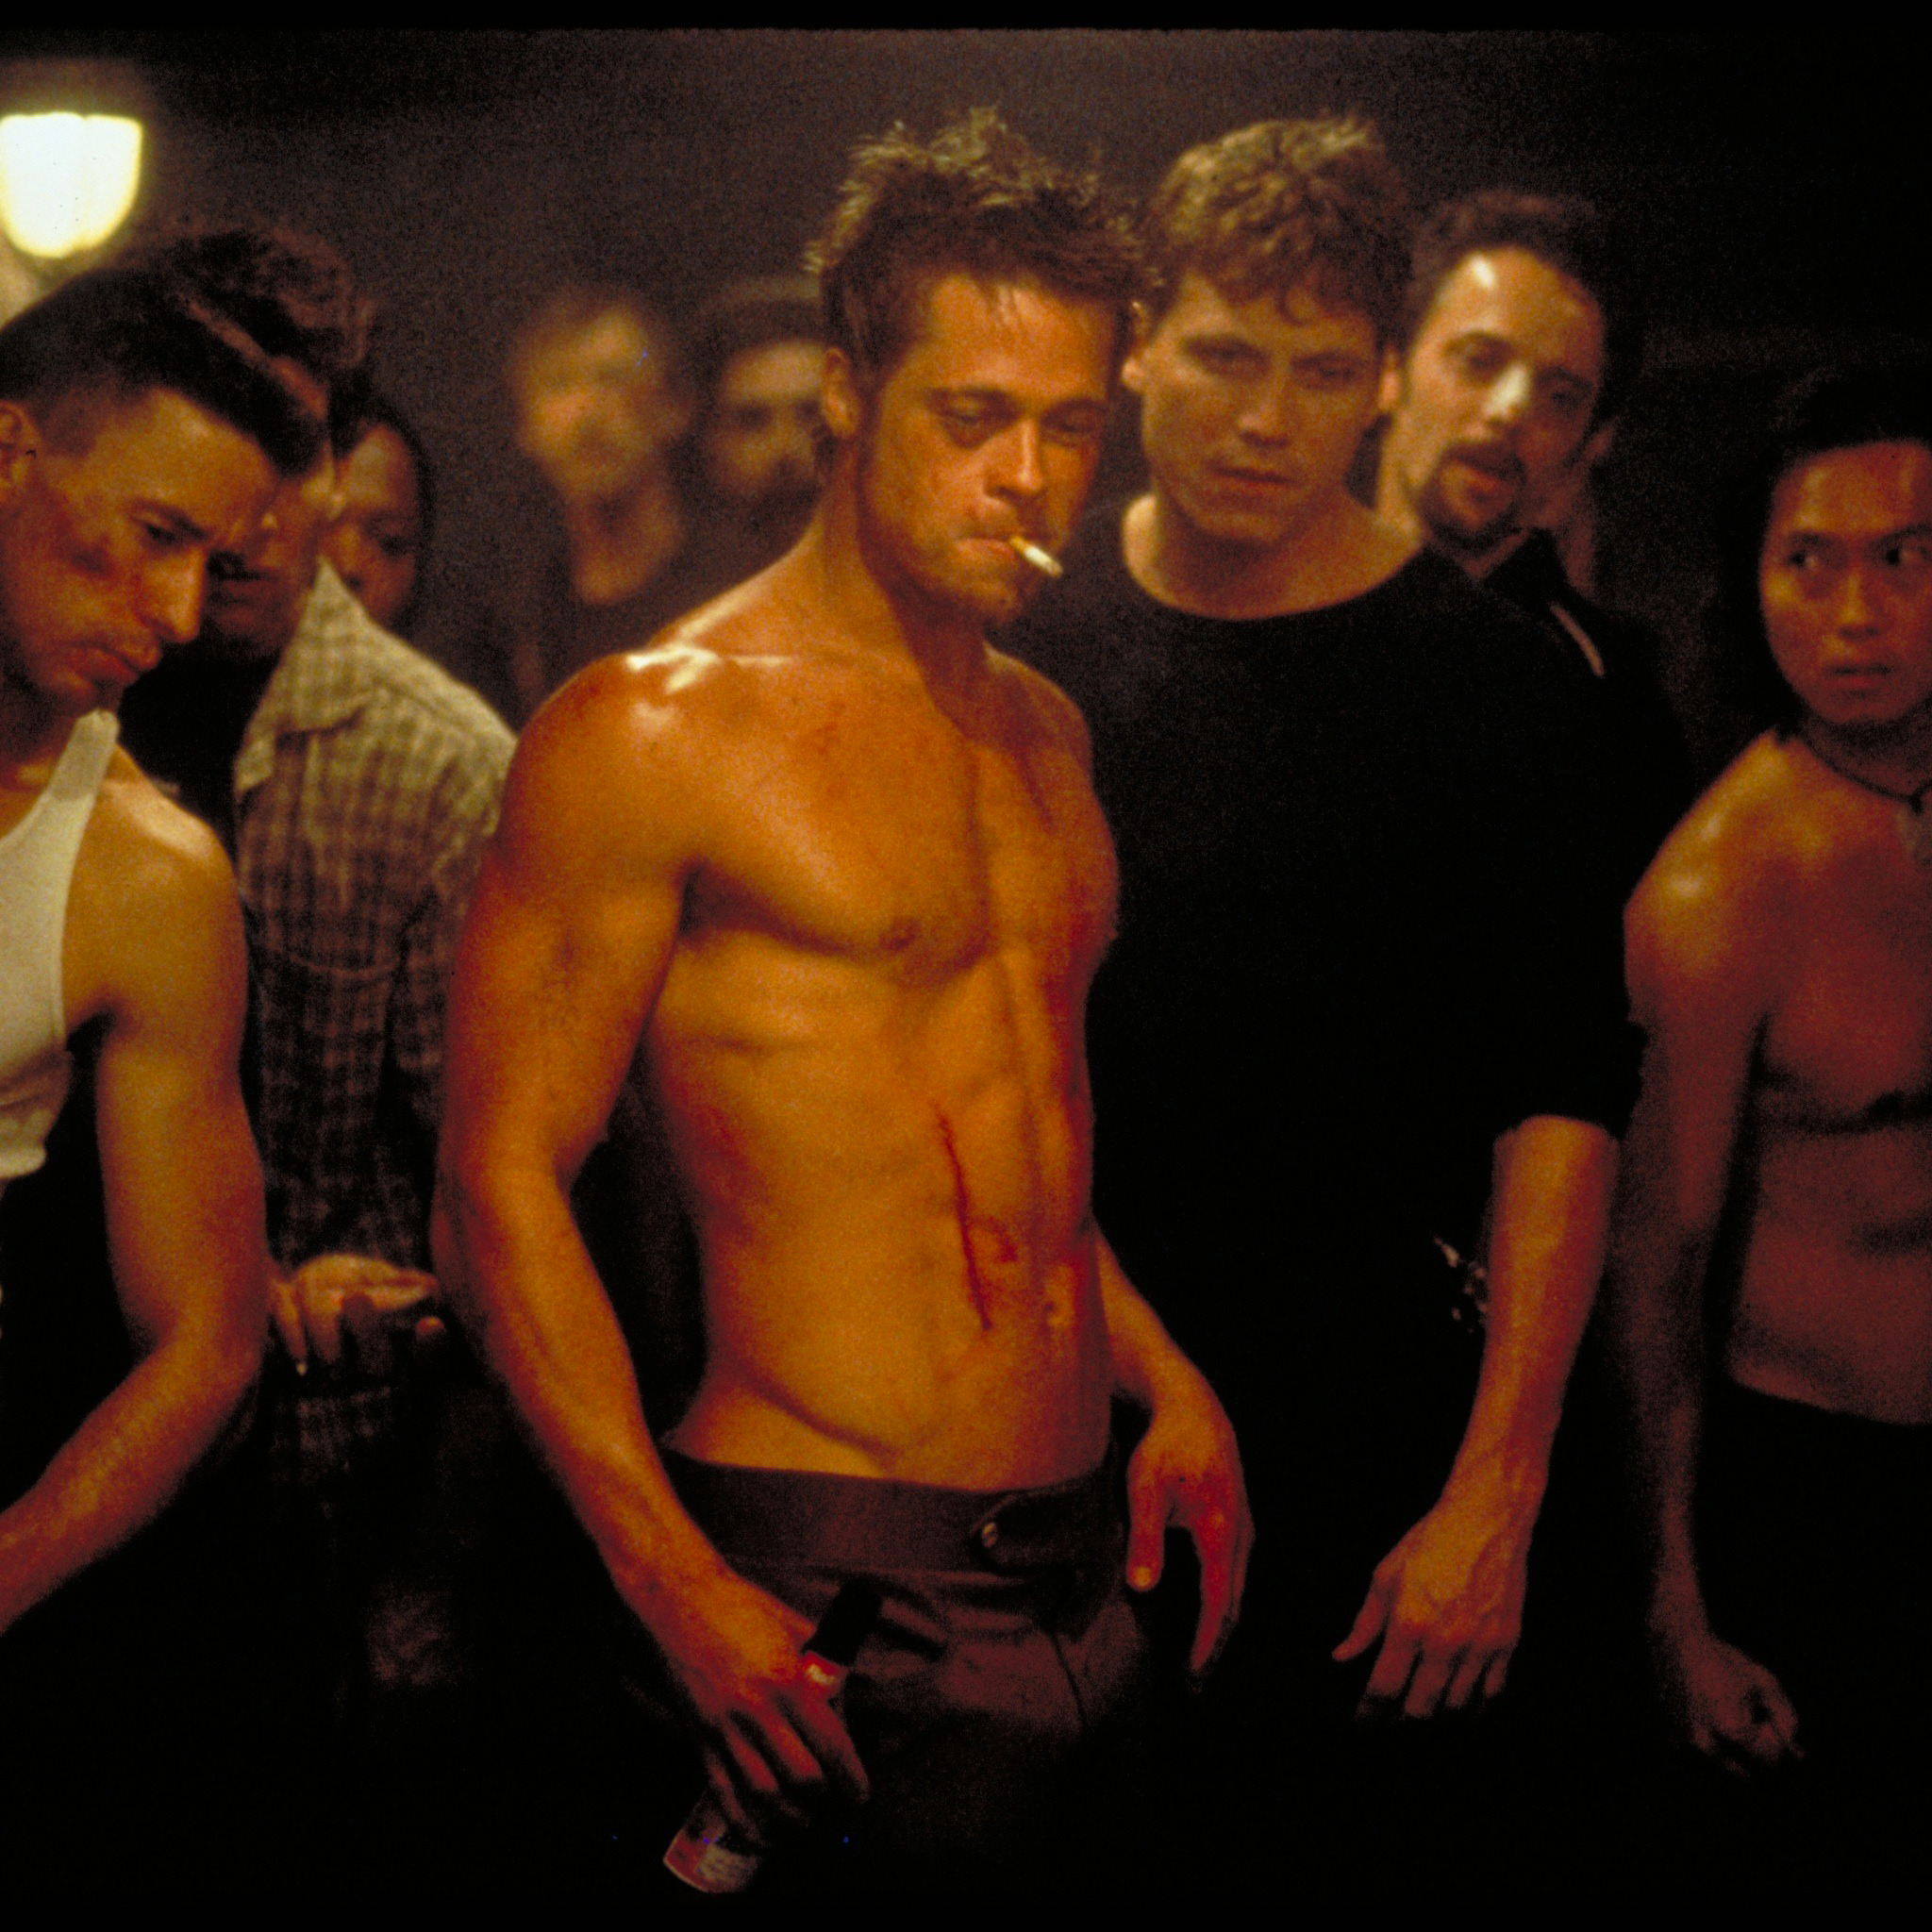 Brad-Pitt-Fight-Club-3Wallpapers-iPad-Retina